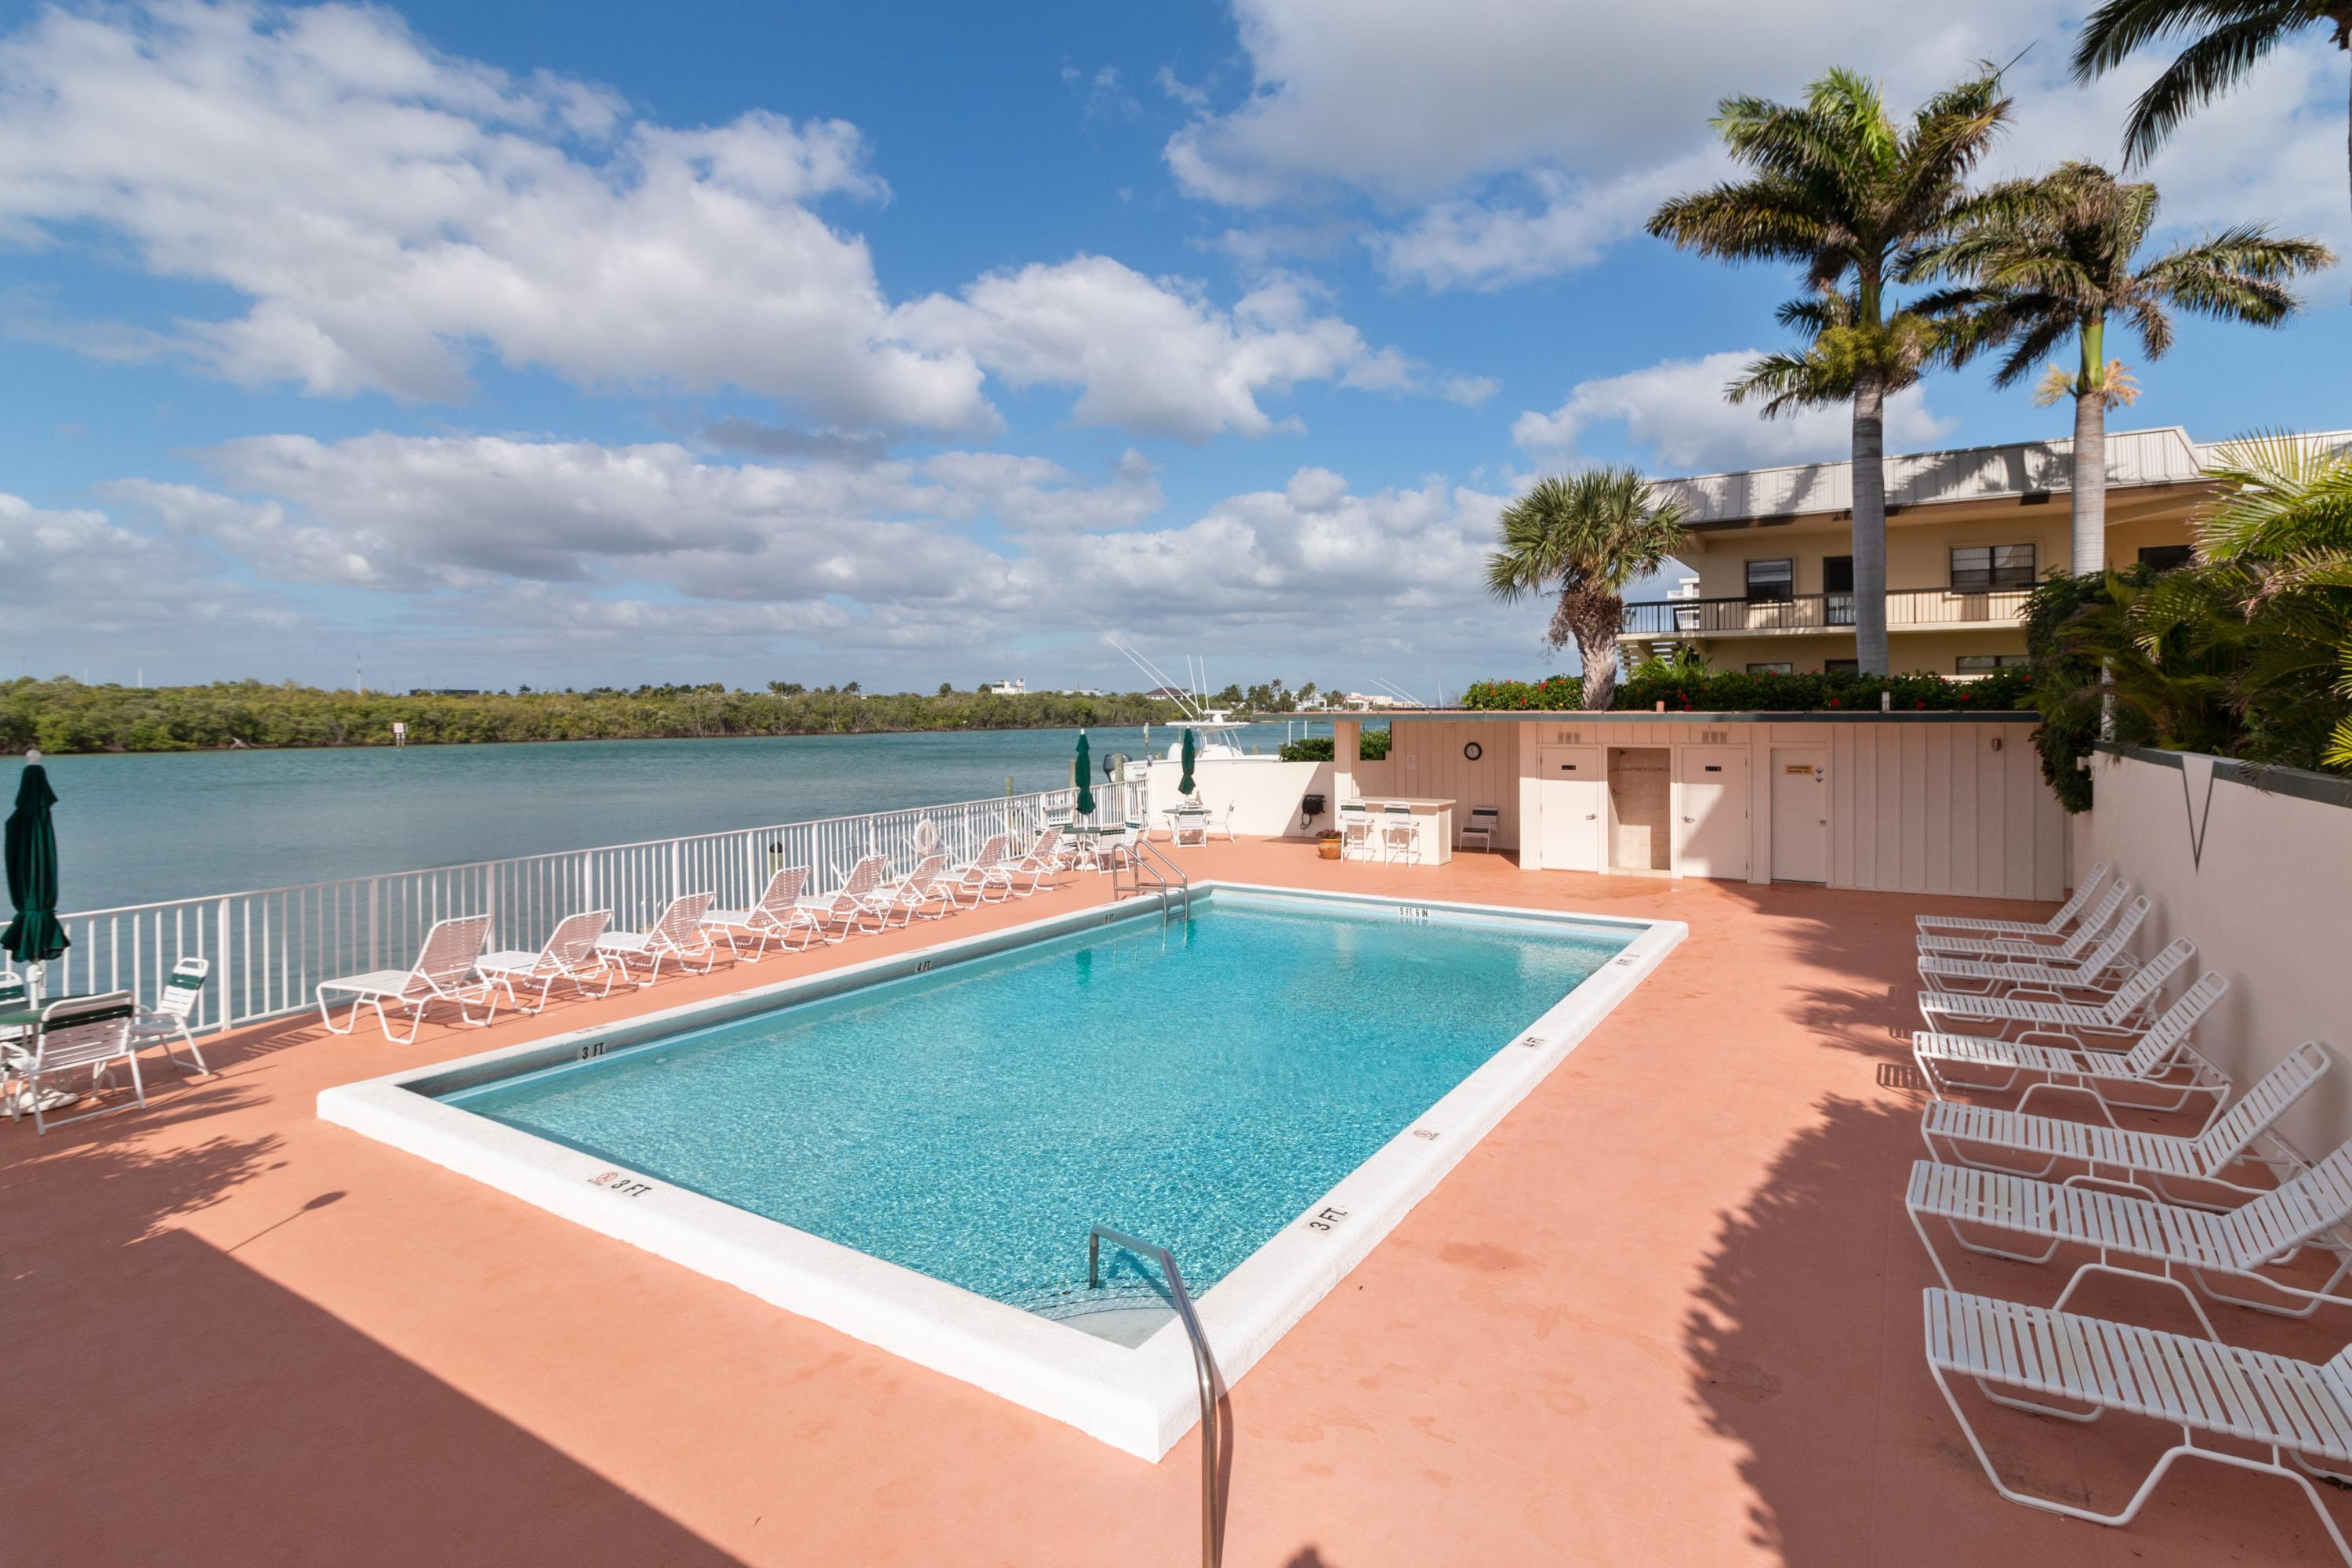 New Home for sale at 225 Beach Road in Tequesta